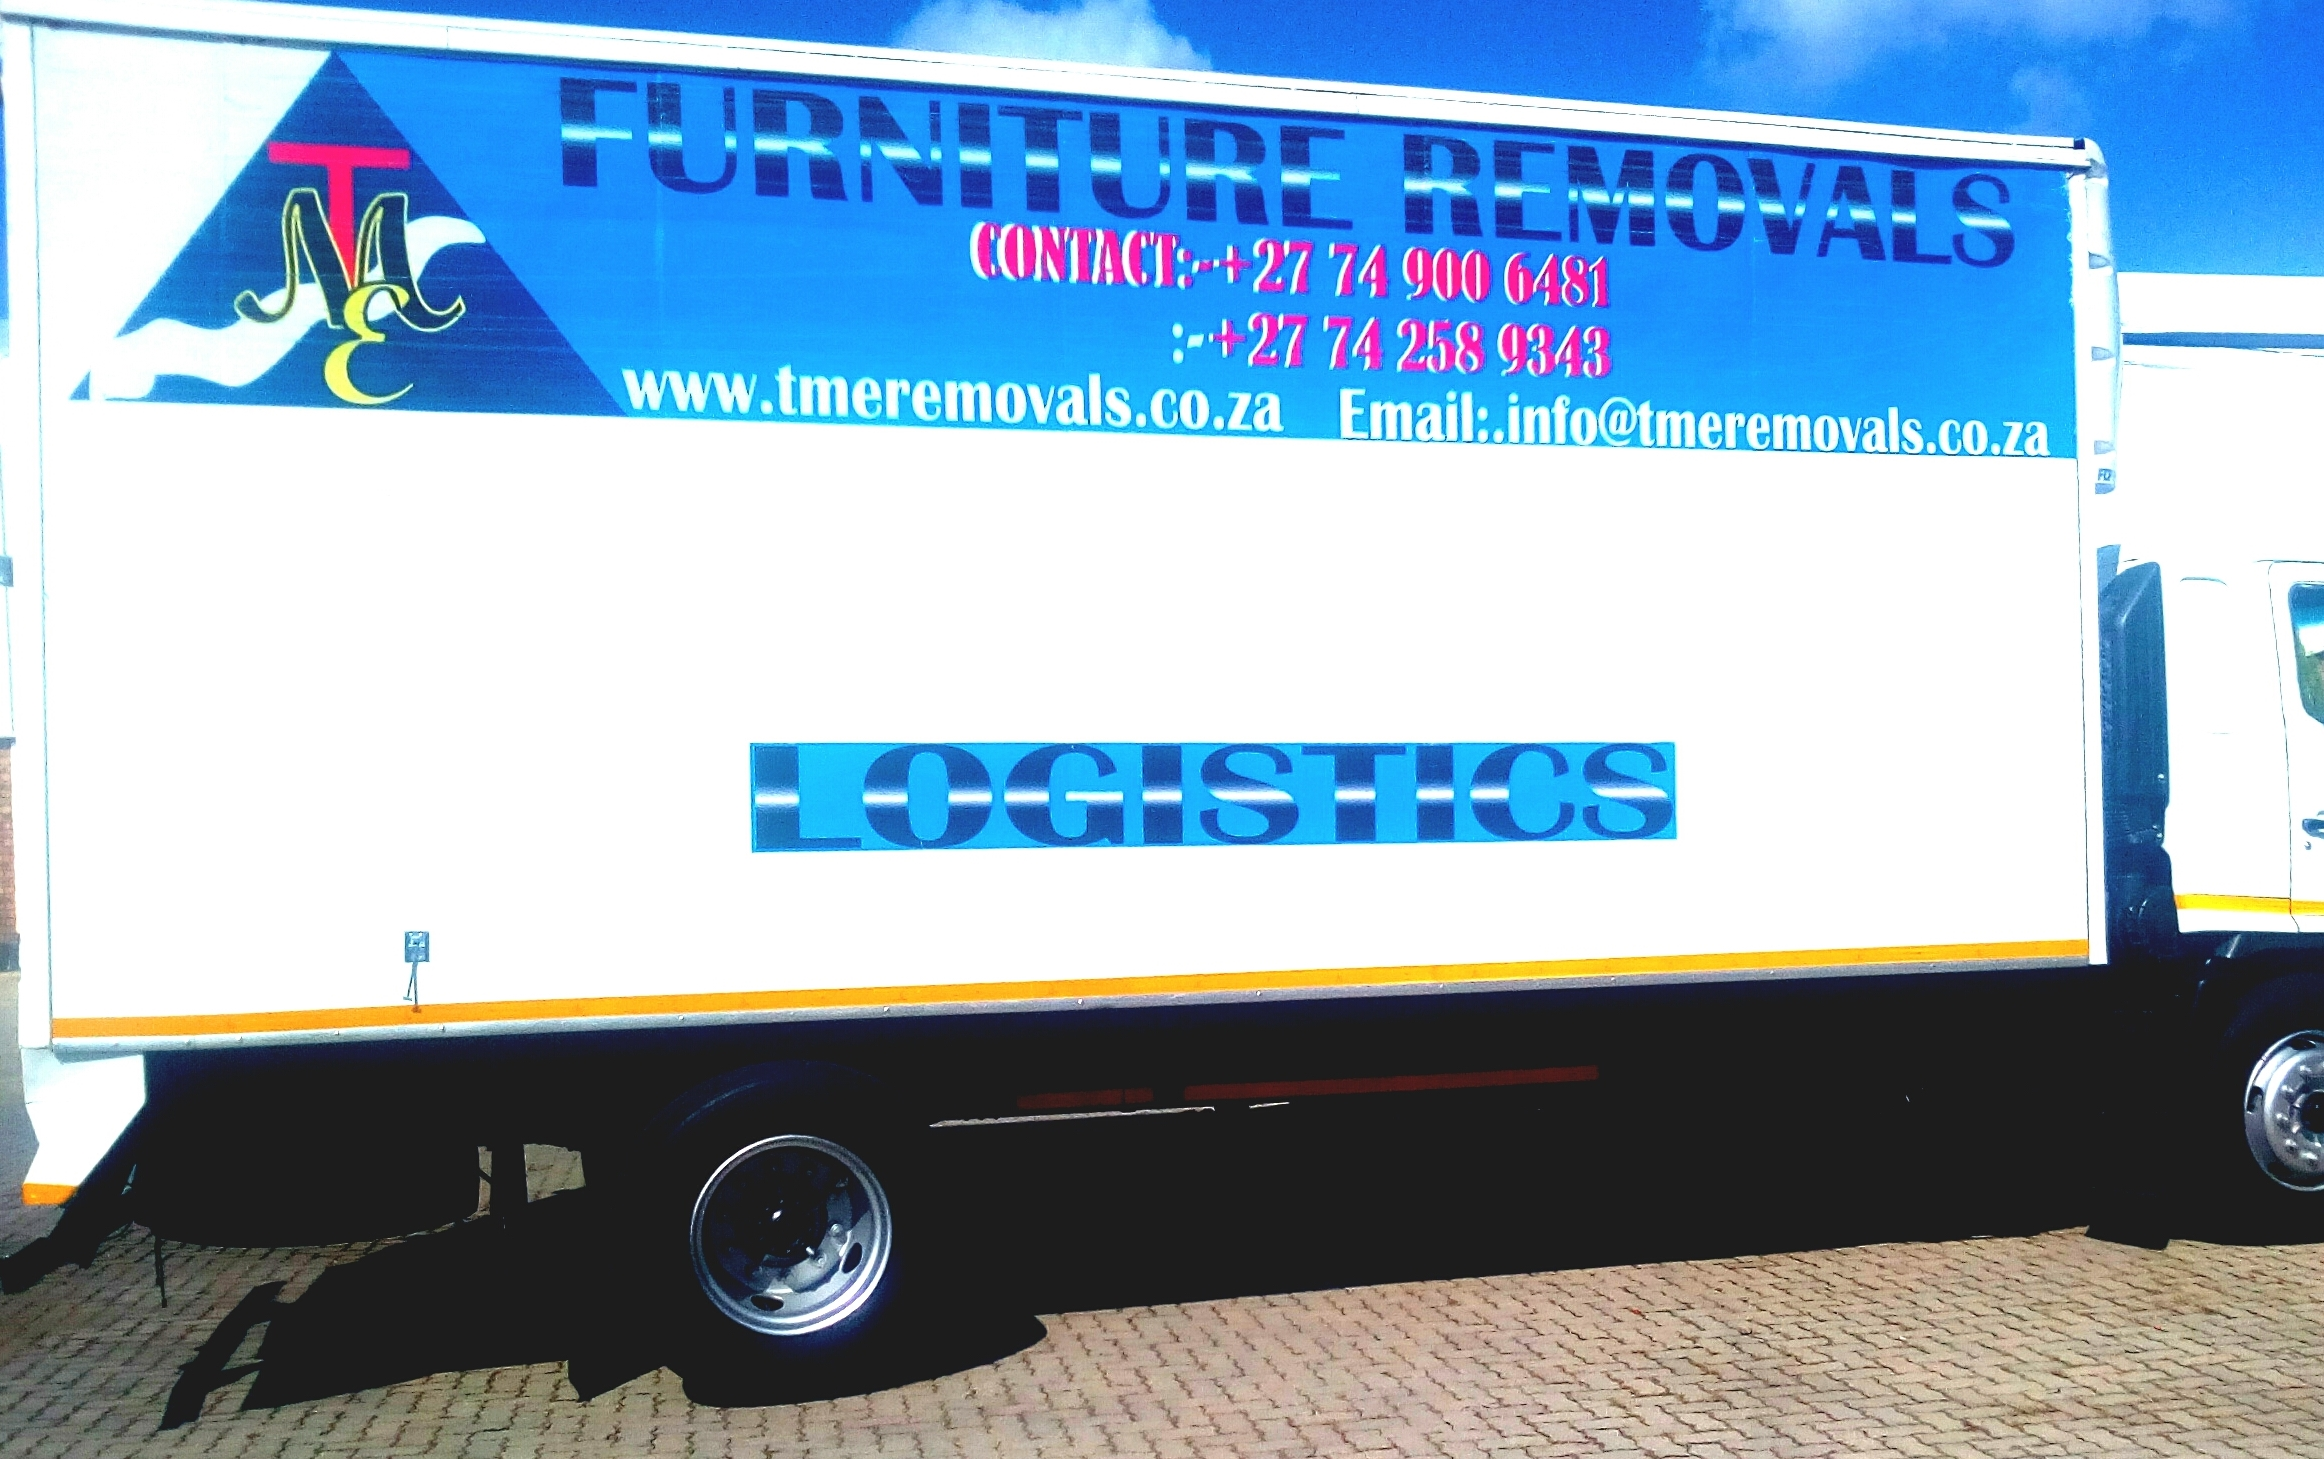 Tme Furniture Removals Moving Company Removals Furniture Furniture Removals Moving Services Transportation And Logistics In Randburg Johannesburg Gauteng Tme Furniture Removals The Best Free Online Business Directory South Africa